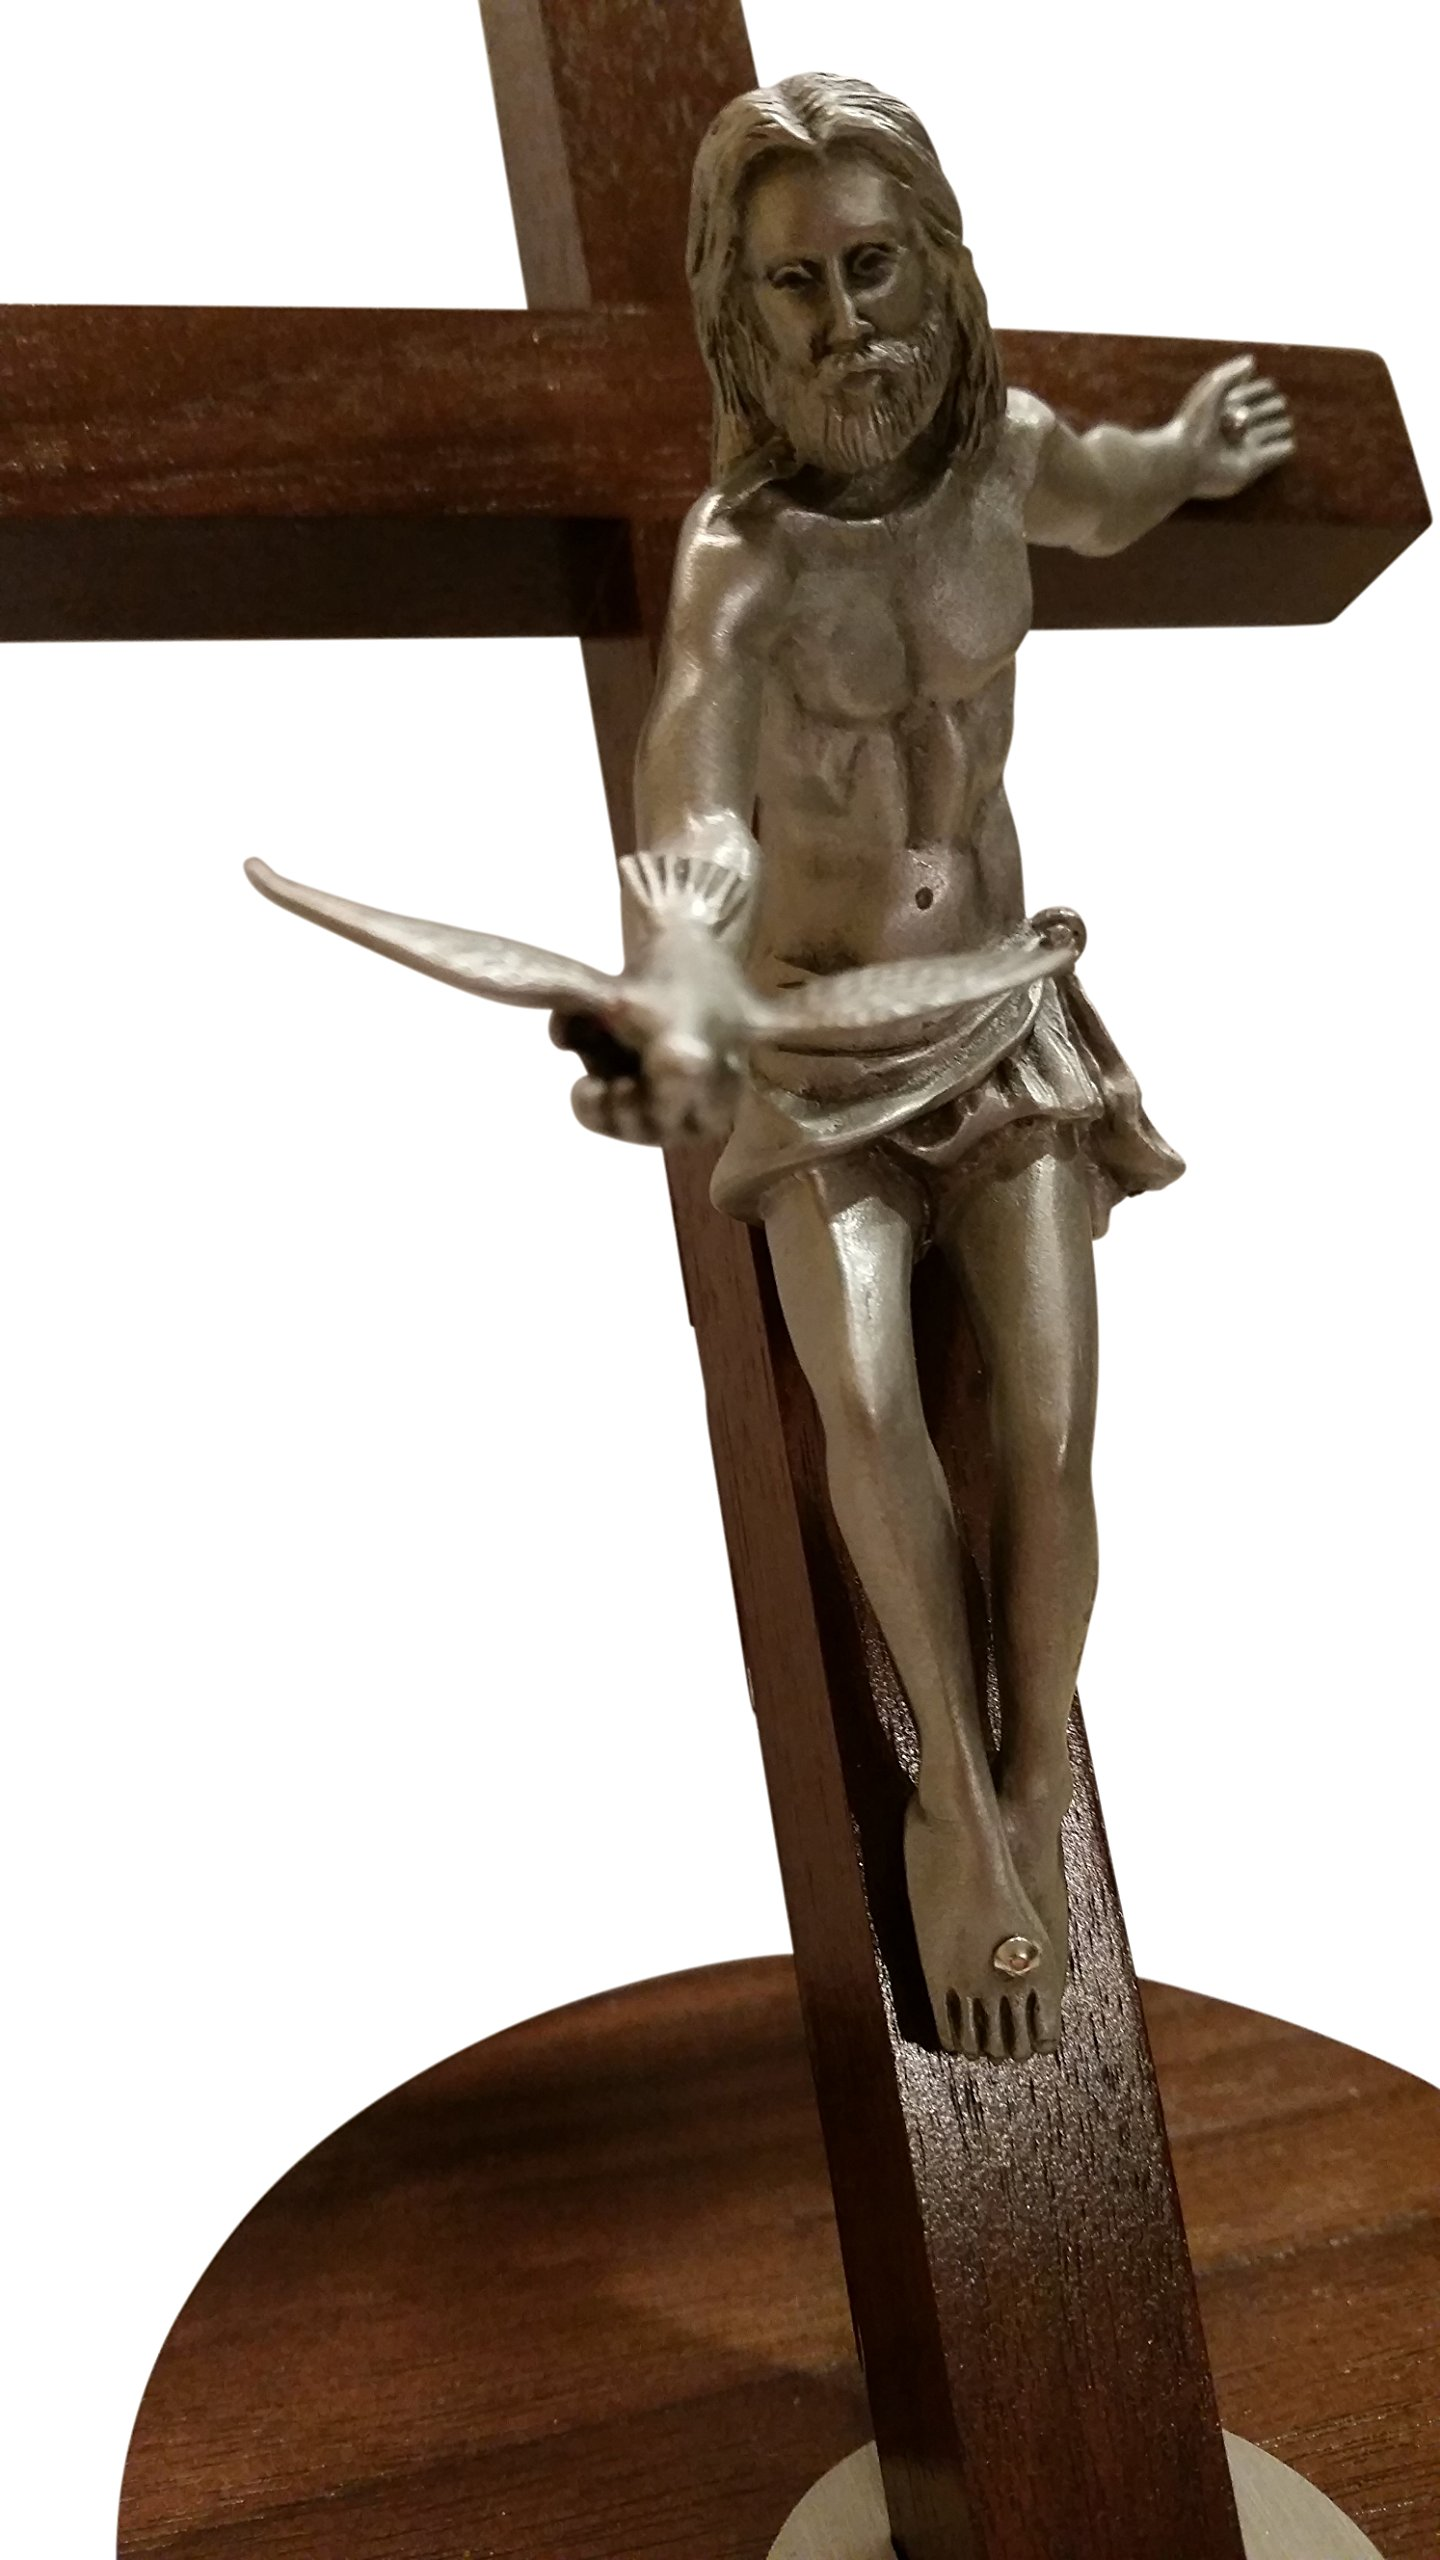 Inspire Nation Gift of the Spirit Walnut Wood Standing Wall Cross Crucifix with Removable Base for Hanging 8 inches by Inspire Nation (Image #5)